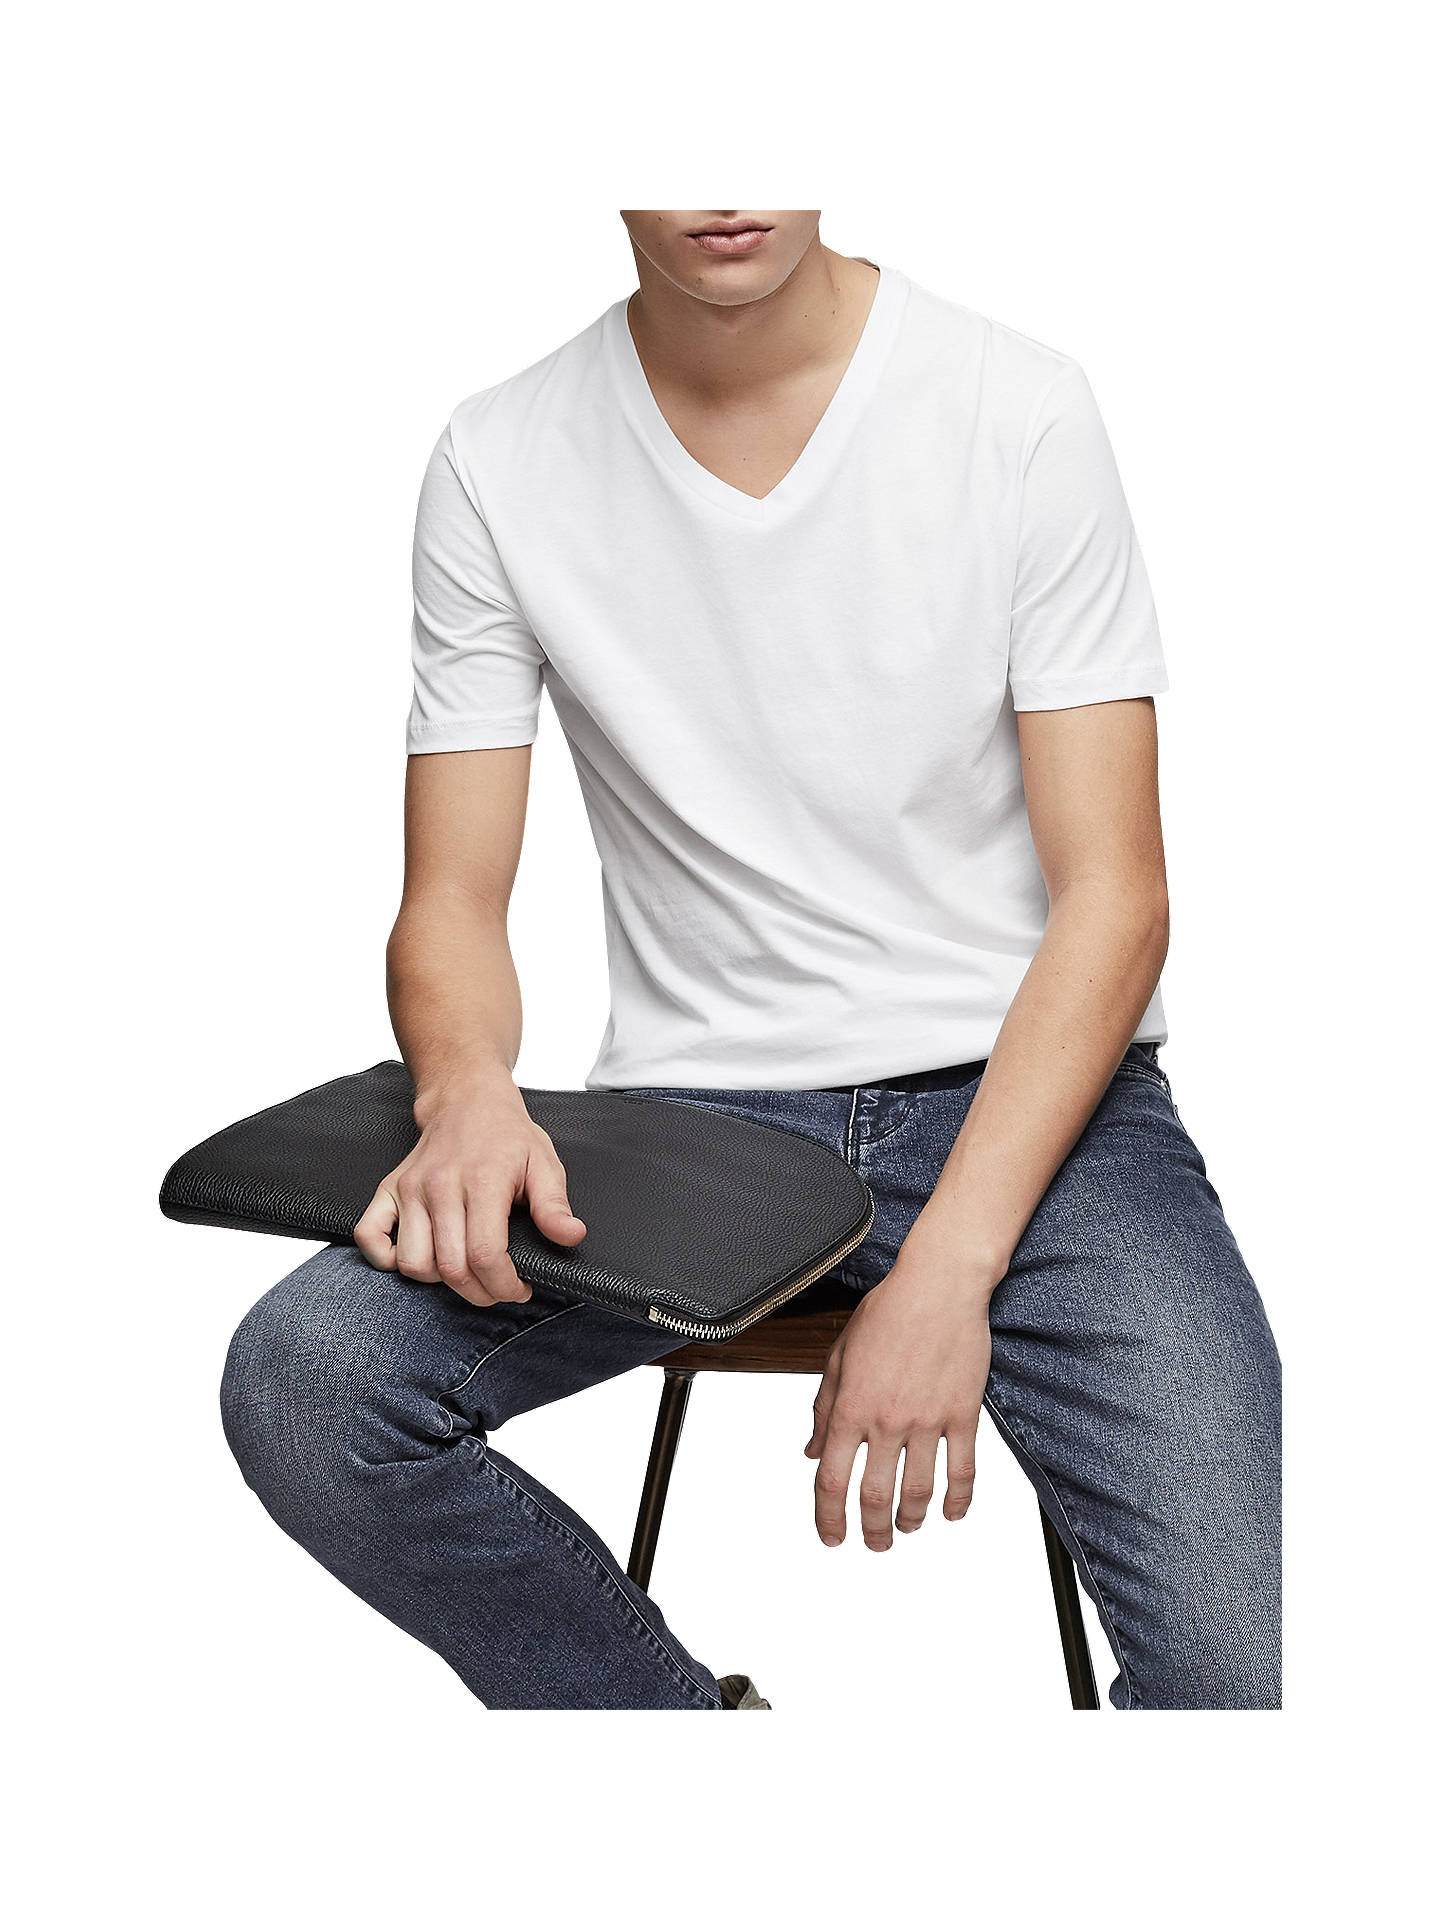 BuyReiss Dayton Cotton V-Neck T-Shirt, White, S Online at johnlewis.com